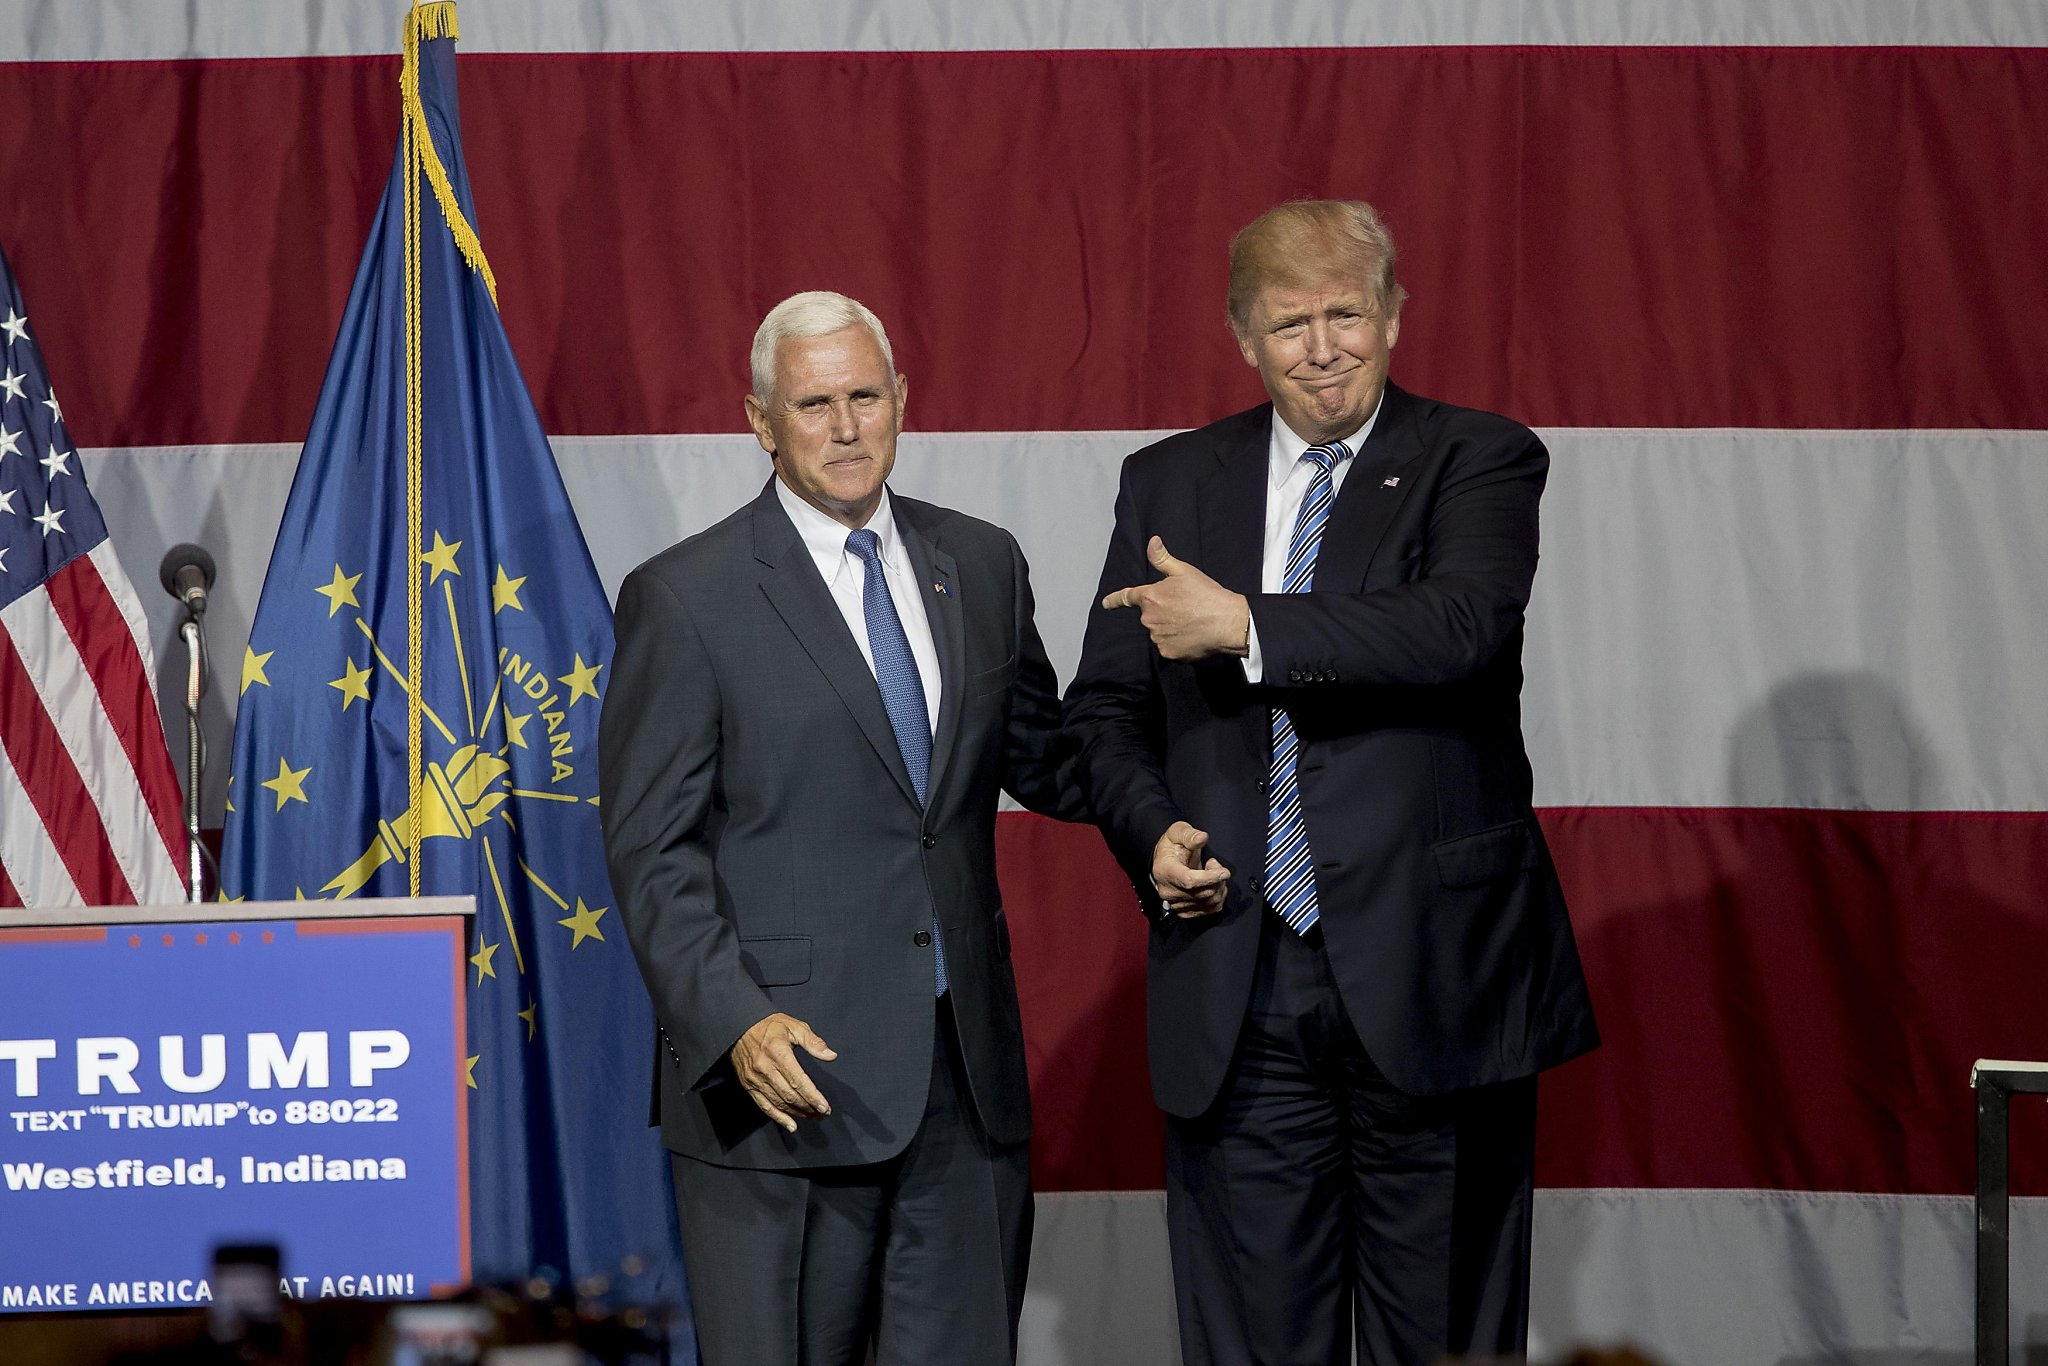 Reports: Donald Trump likely to pick Indiana Gov. Mike Pence as running mate